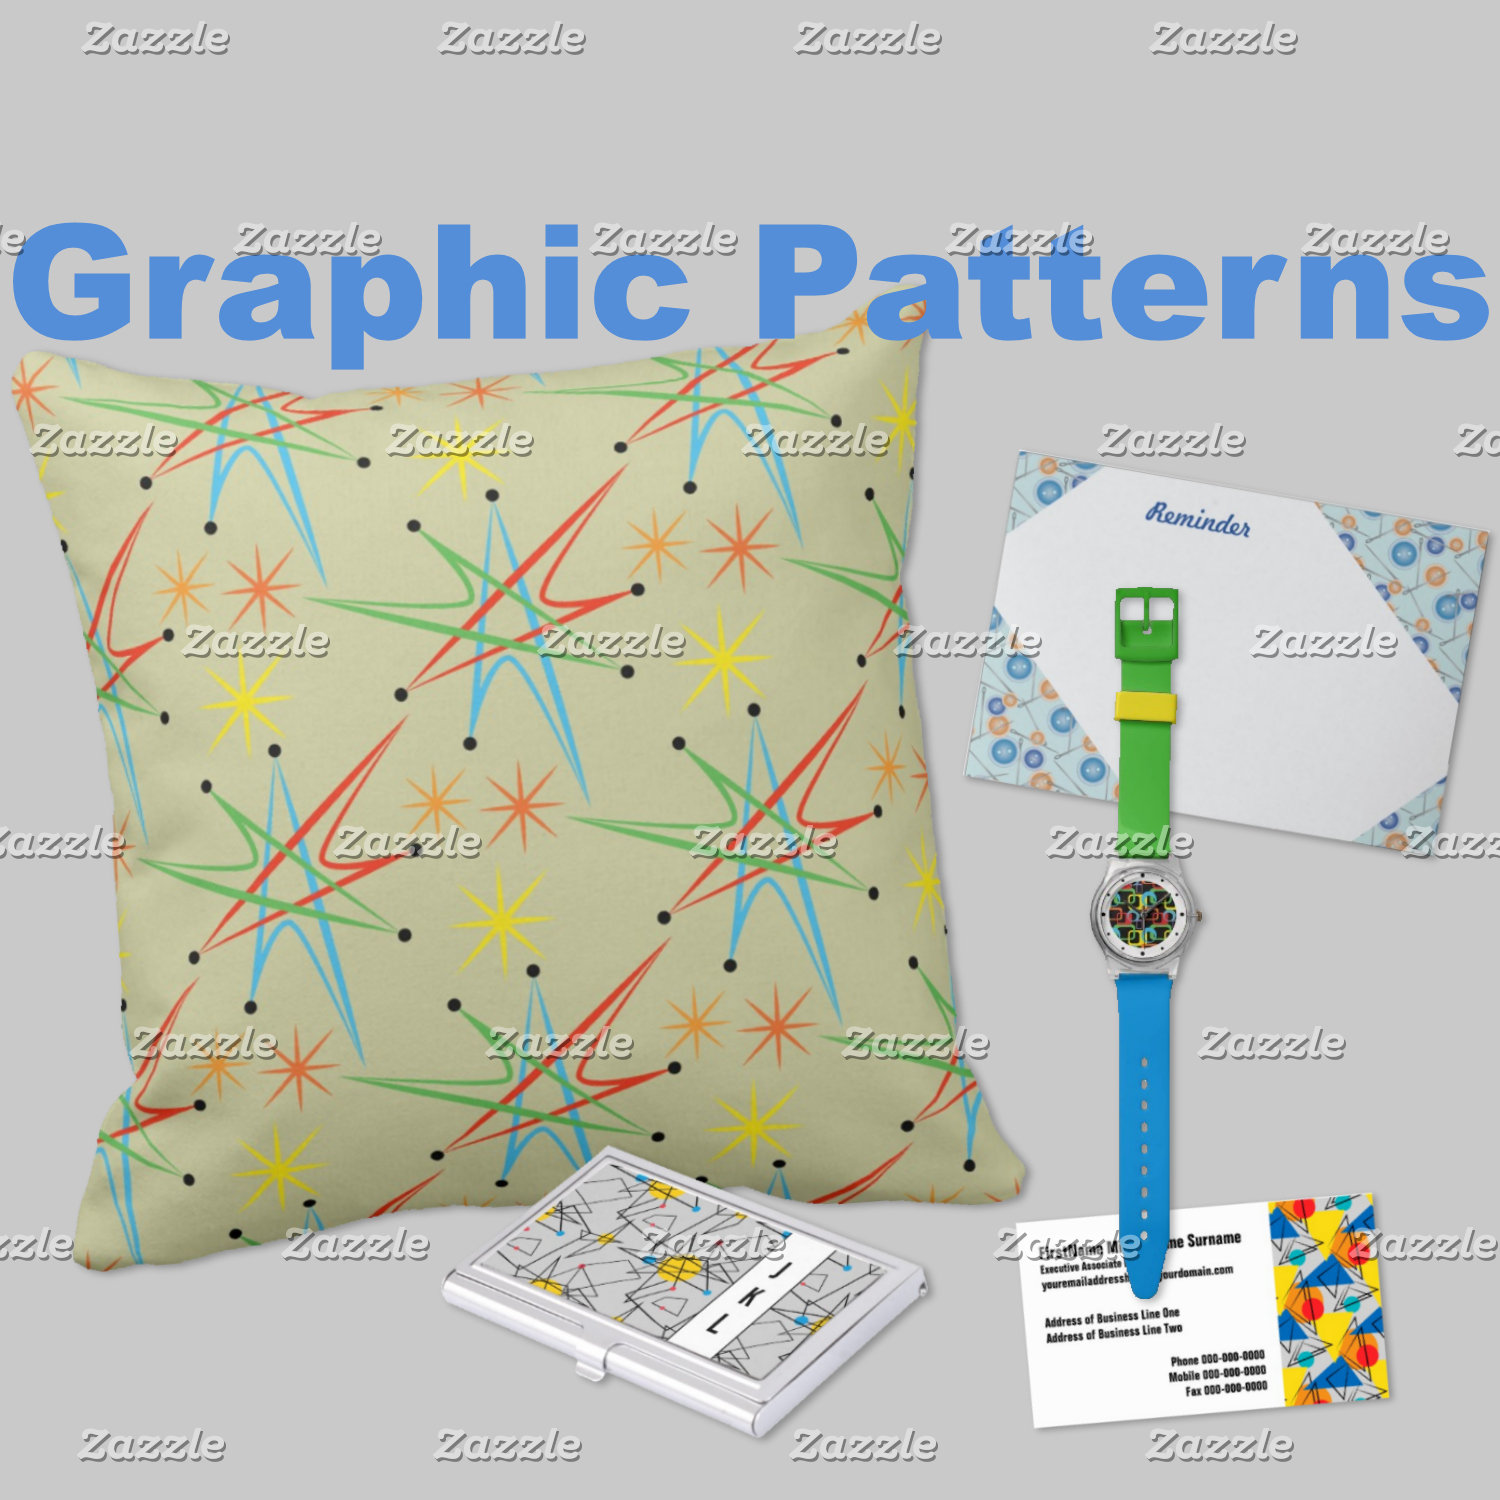 Graphic Patterns